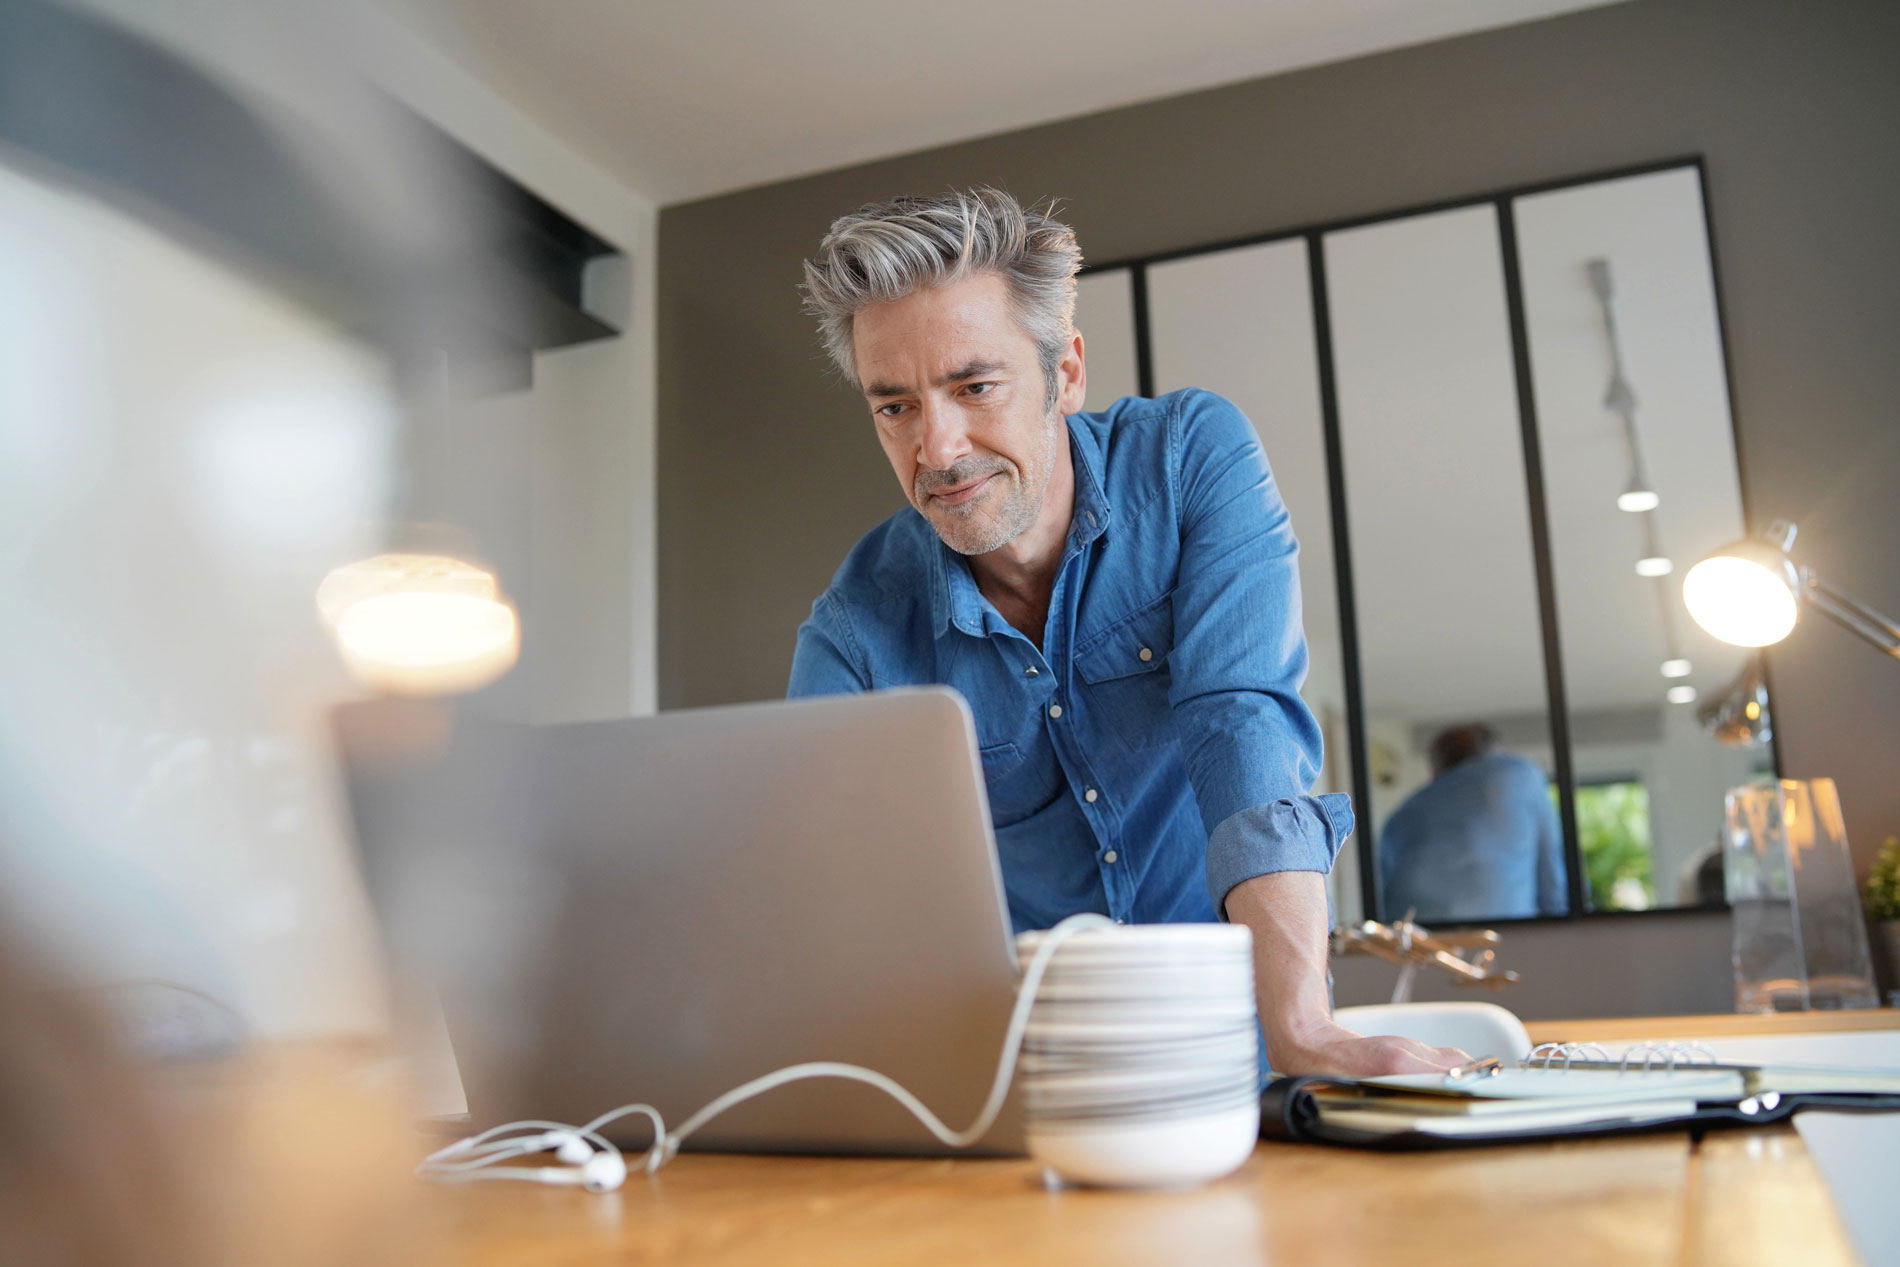 Work From Home Tips To Help Your Company Survive The Coronavirus